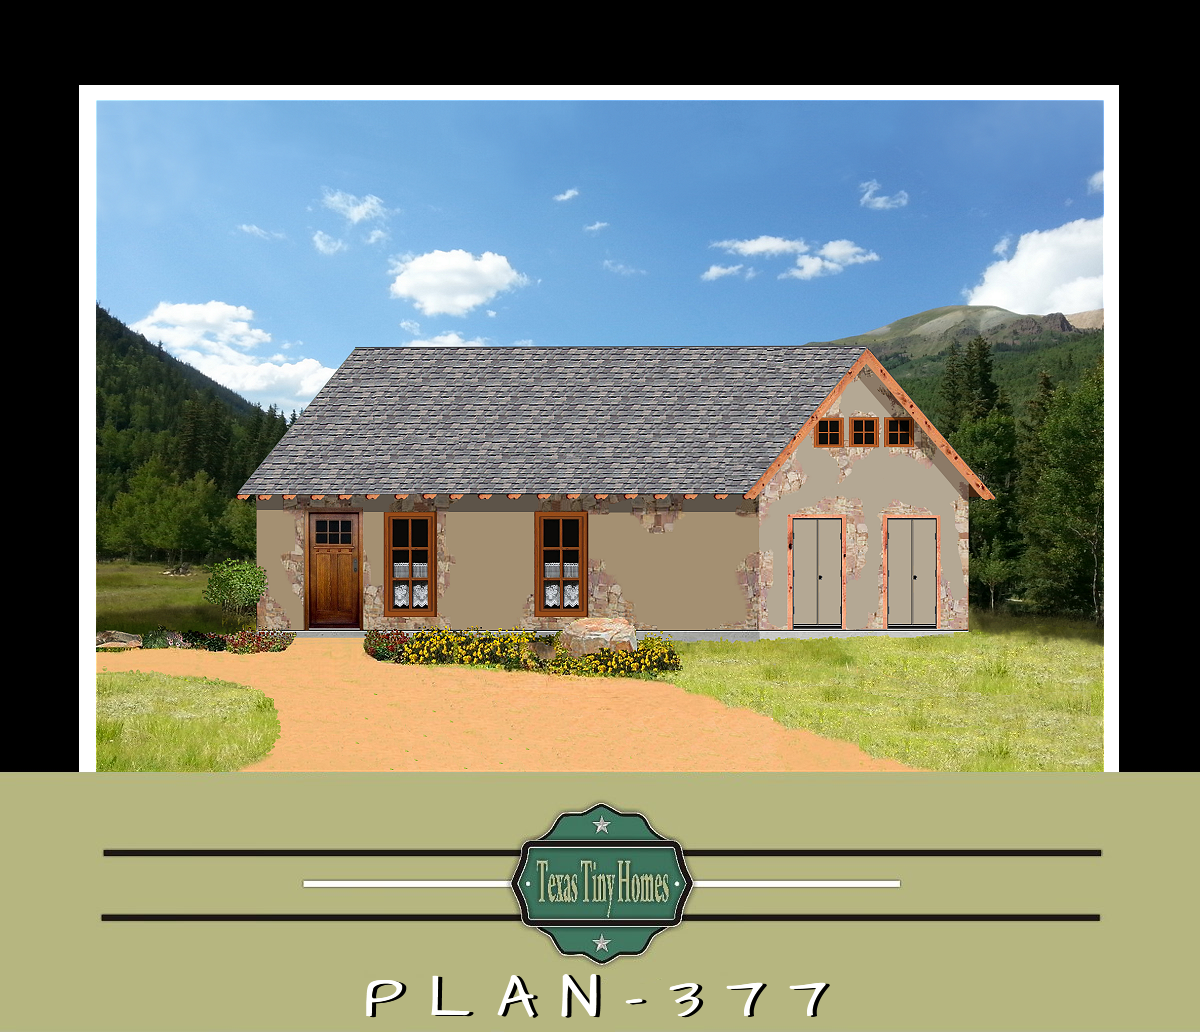 Texas tiny homes plan 377 for Small house plans texas